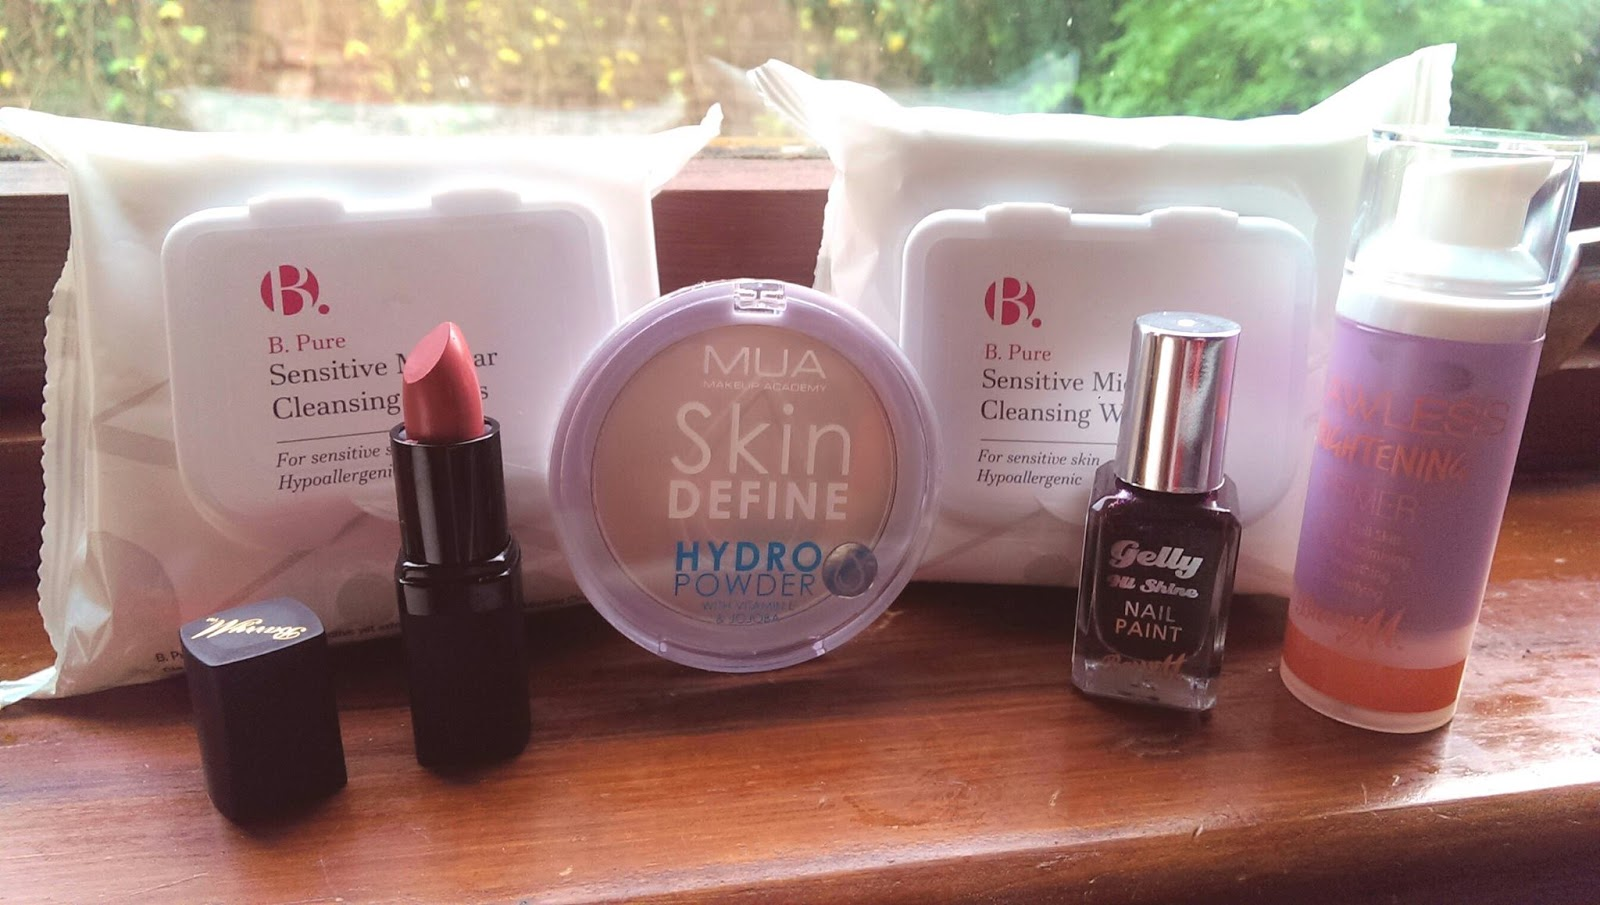 lebellelavie - A mini haul from Superdrug